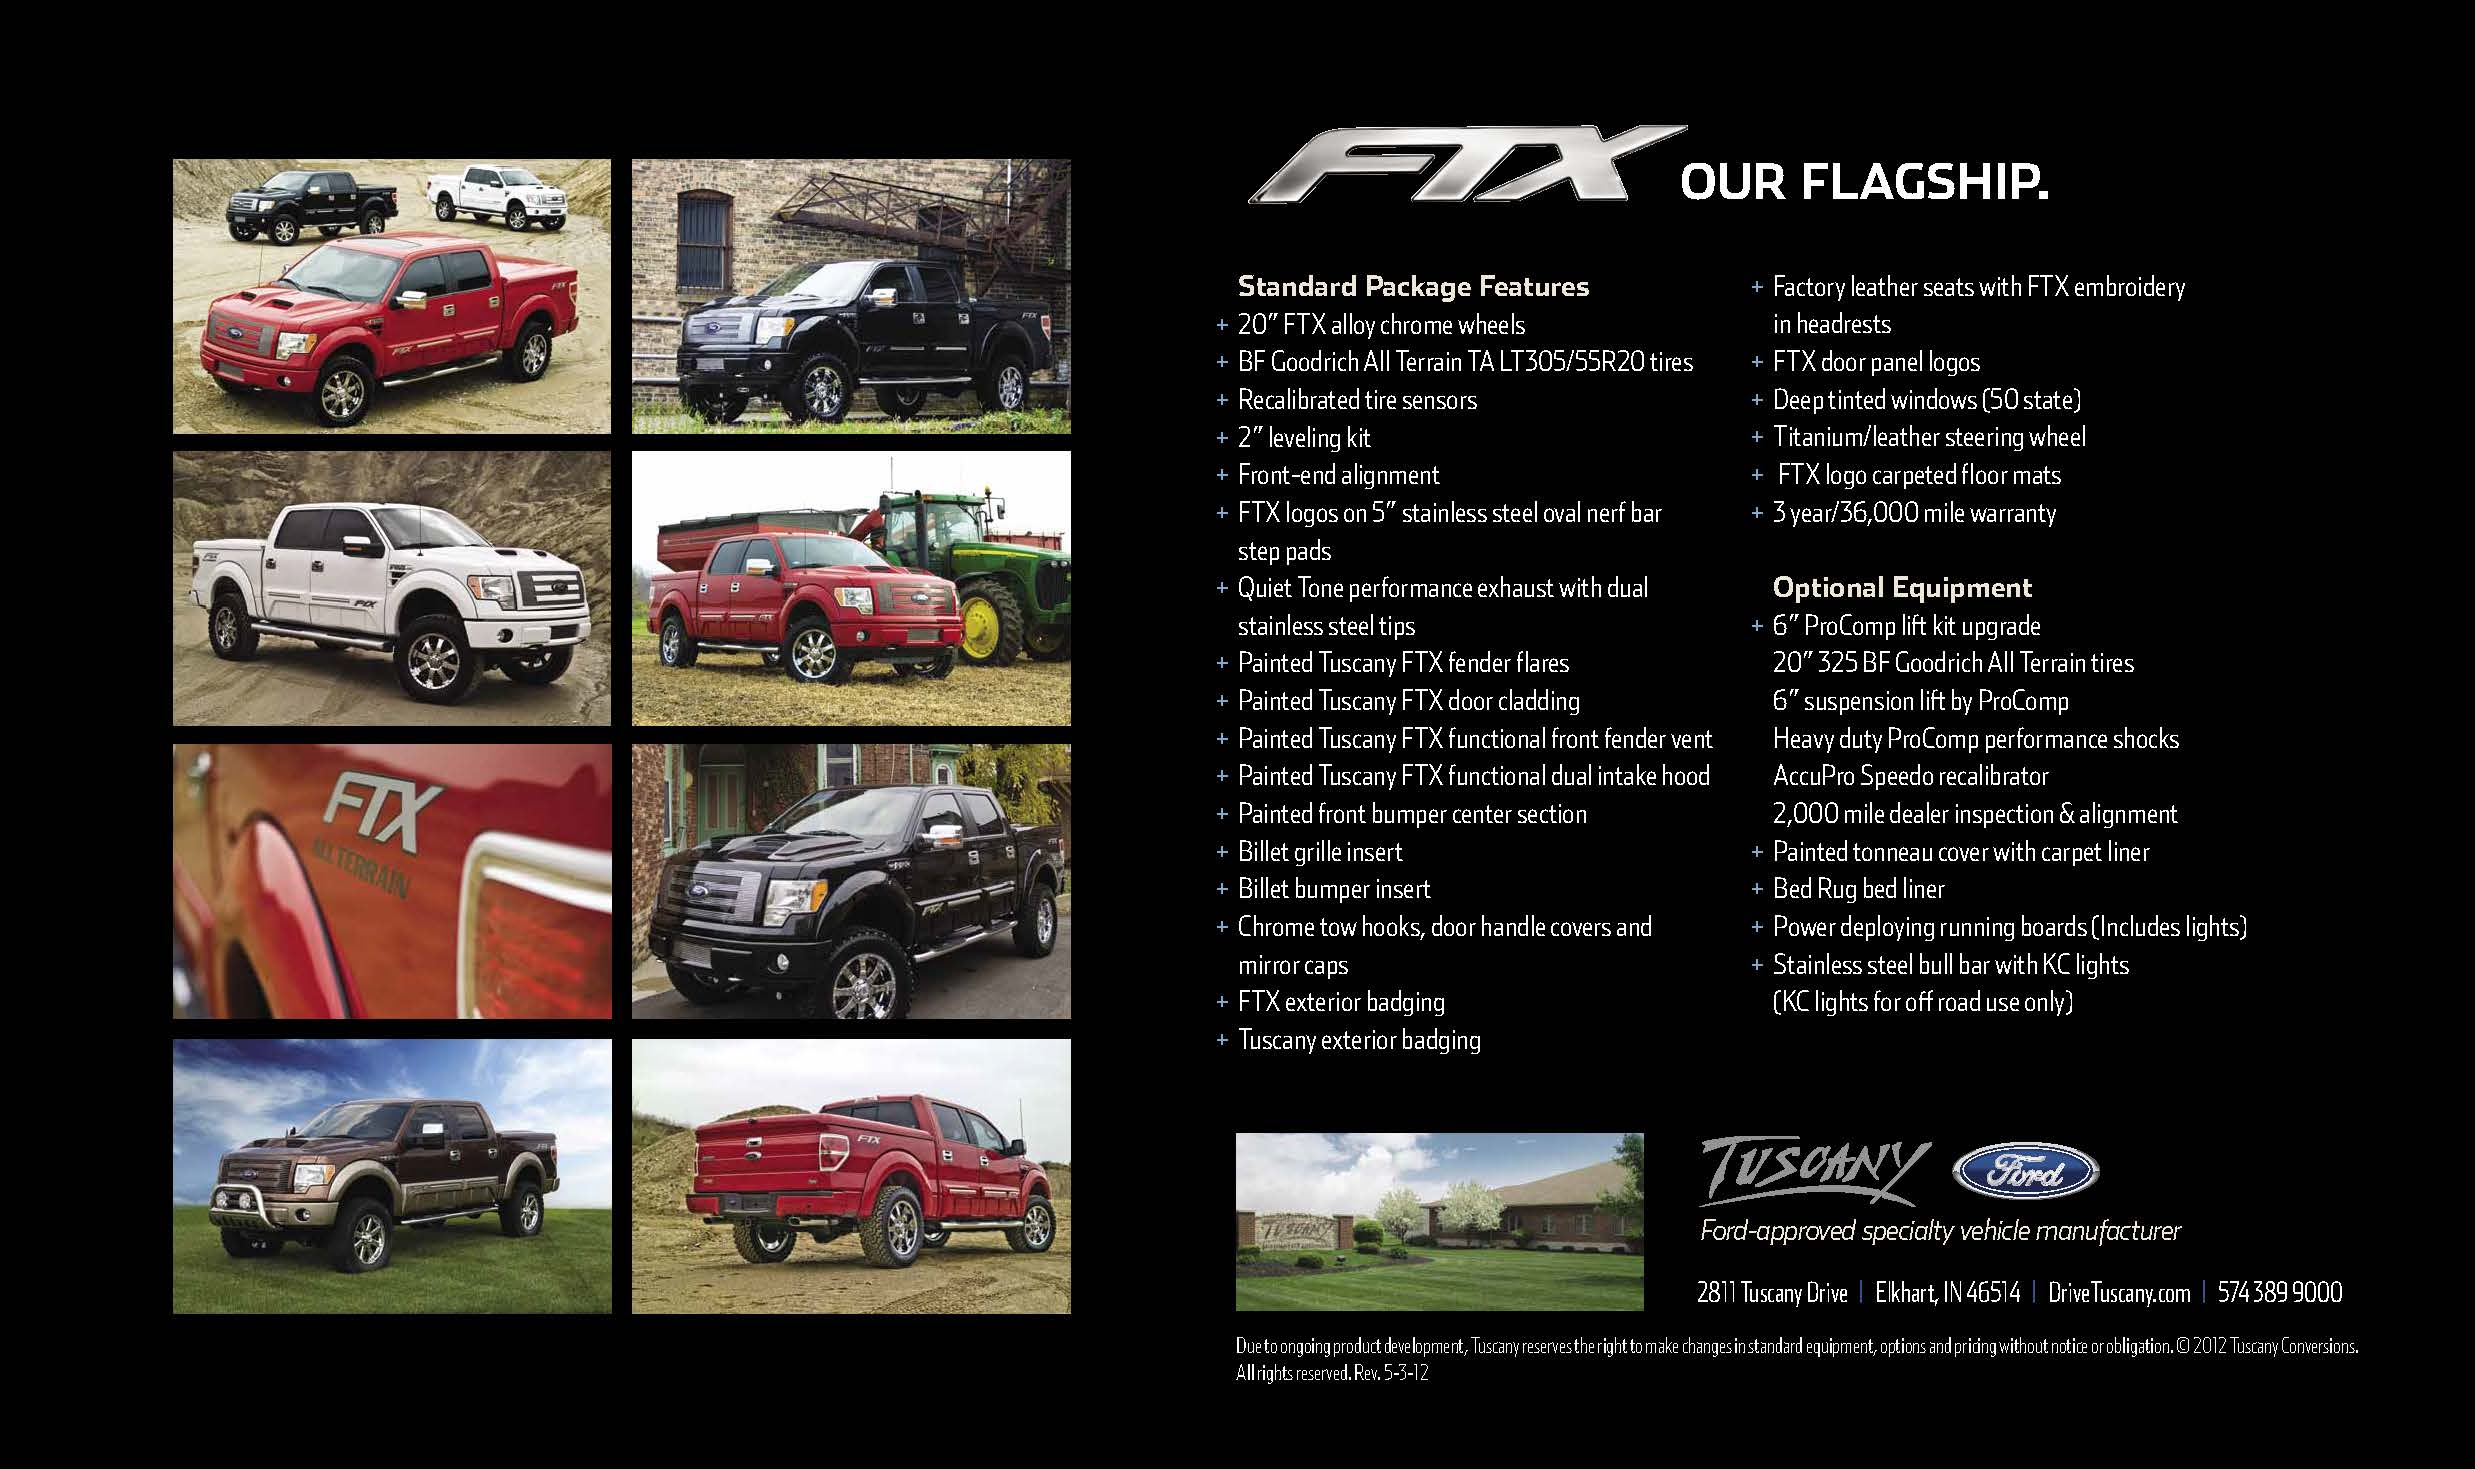 tuscany details introducing htm truck ftx orders custom the ford inventory